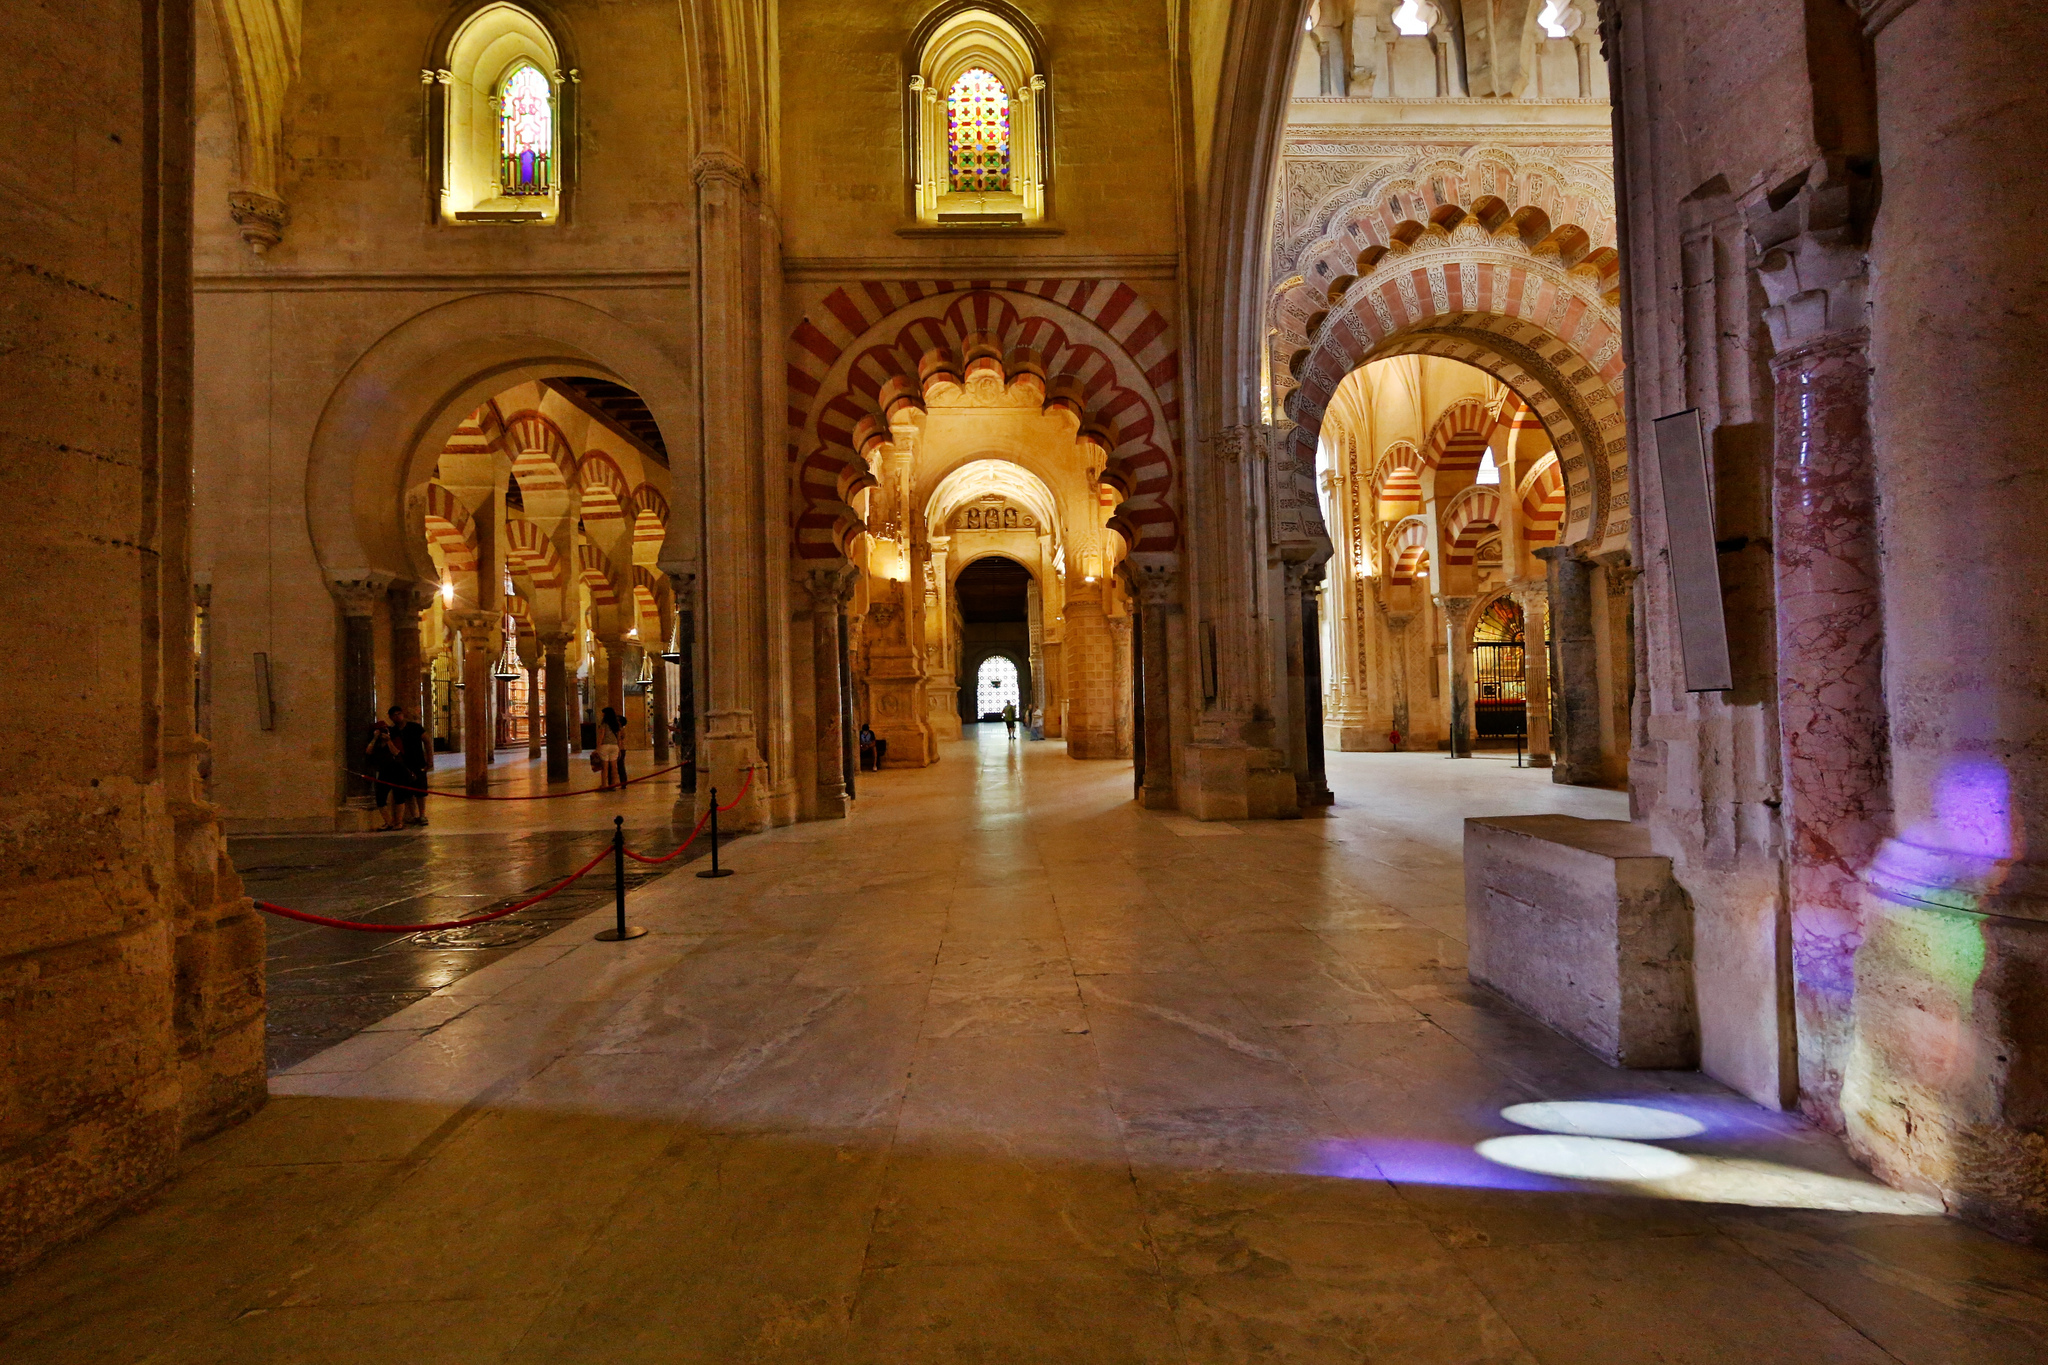 great mosque at cordoba in spain The great mosque of cordoba is a religious tourism in cordoba, spain firstly, the building is a chatedral named visigohts st vincent, with the onset of the barbarian invasions of the 6th century, roman society on the iberian peninsula crumbled, and cordoba fell to the visigoths in 572.